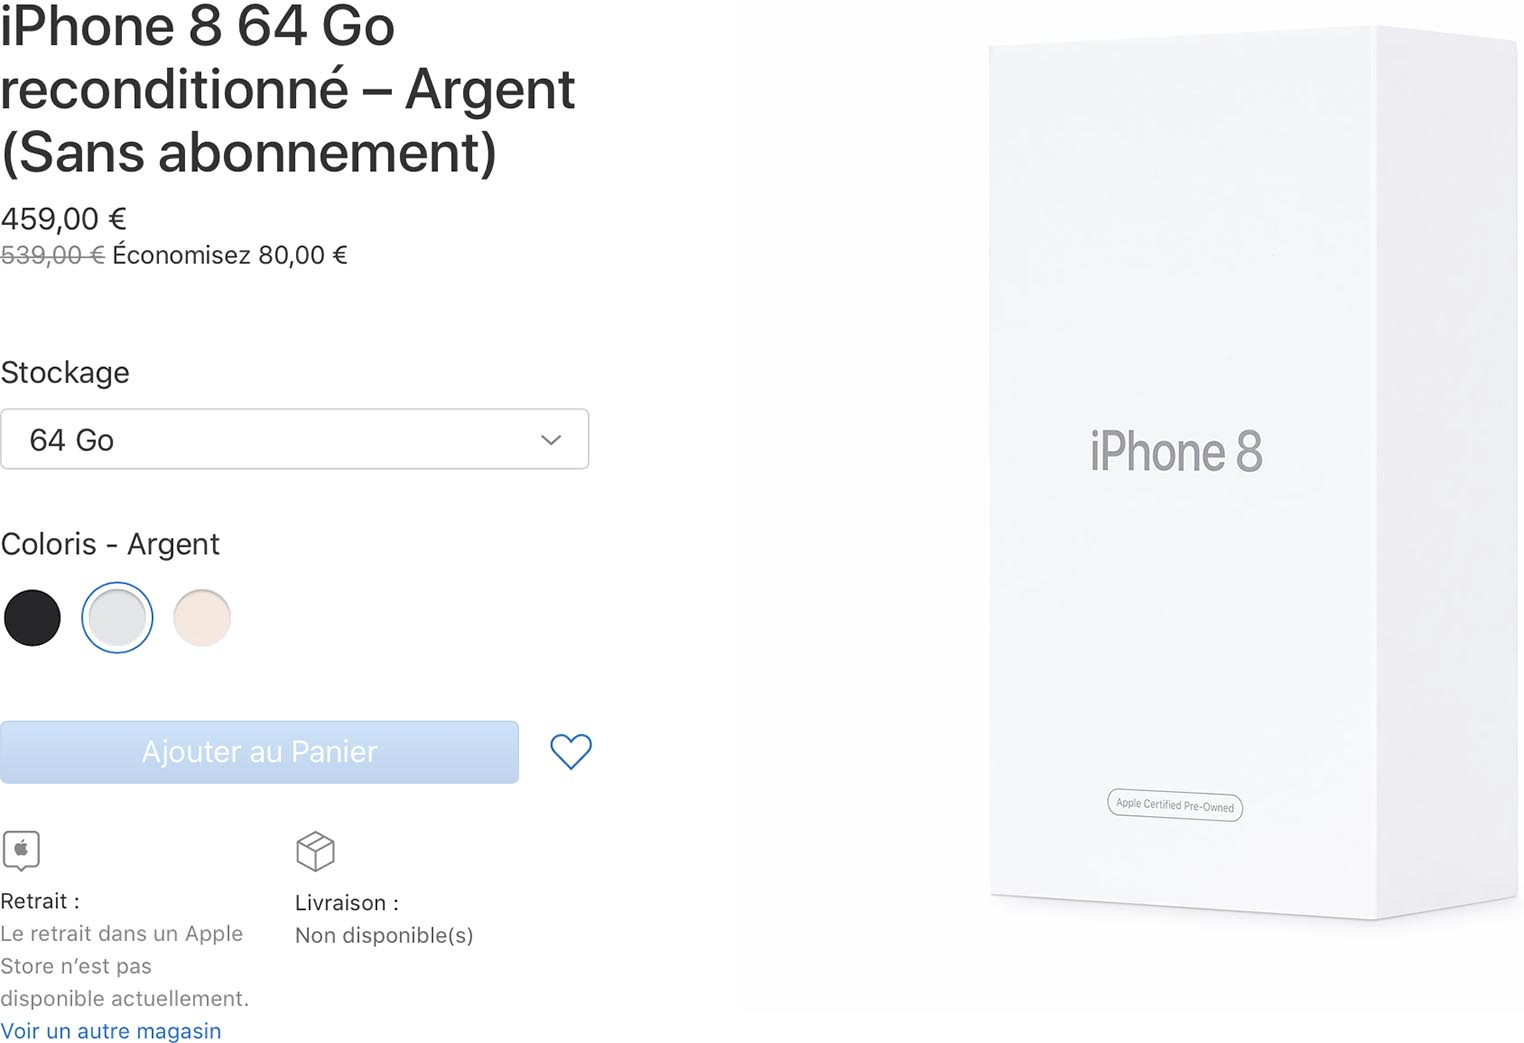 iPhone 8 64 Go Refurb Store